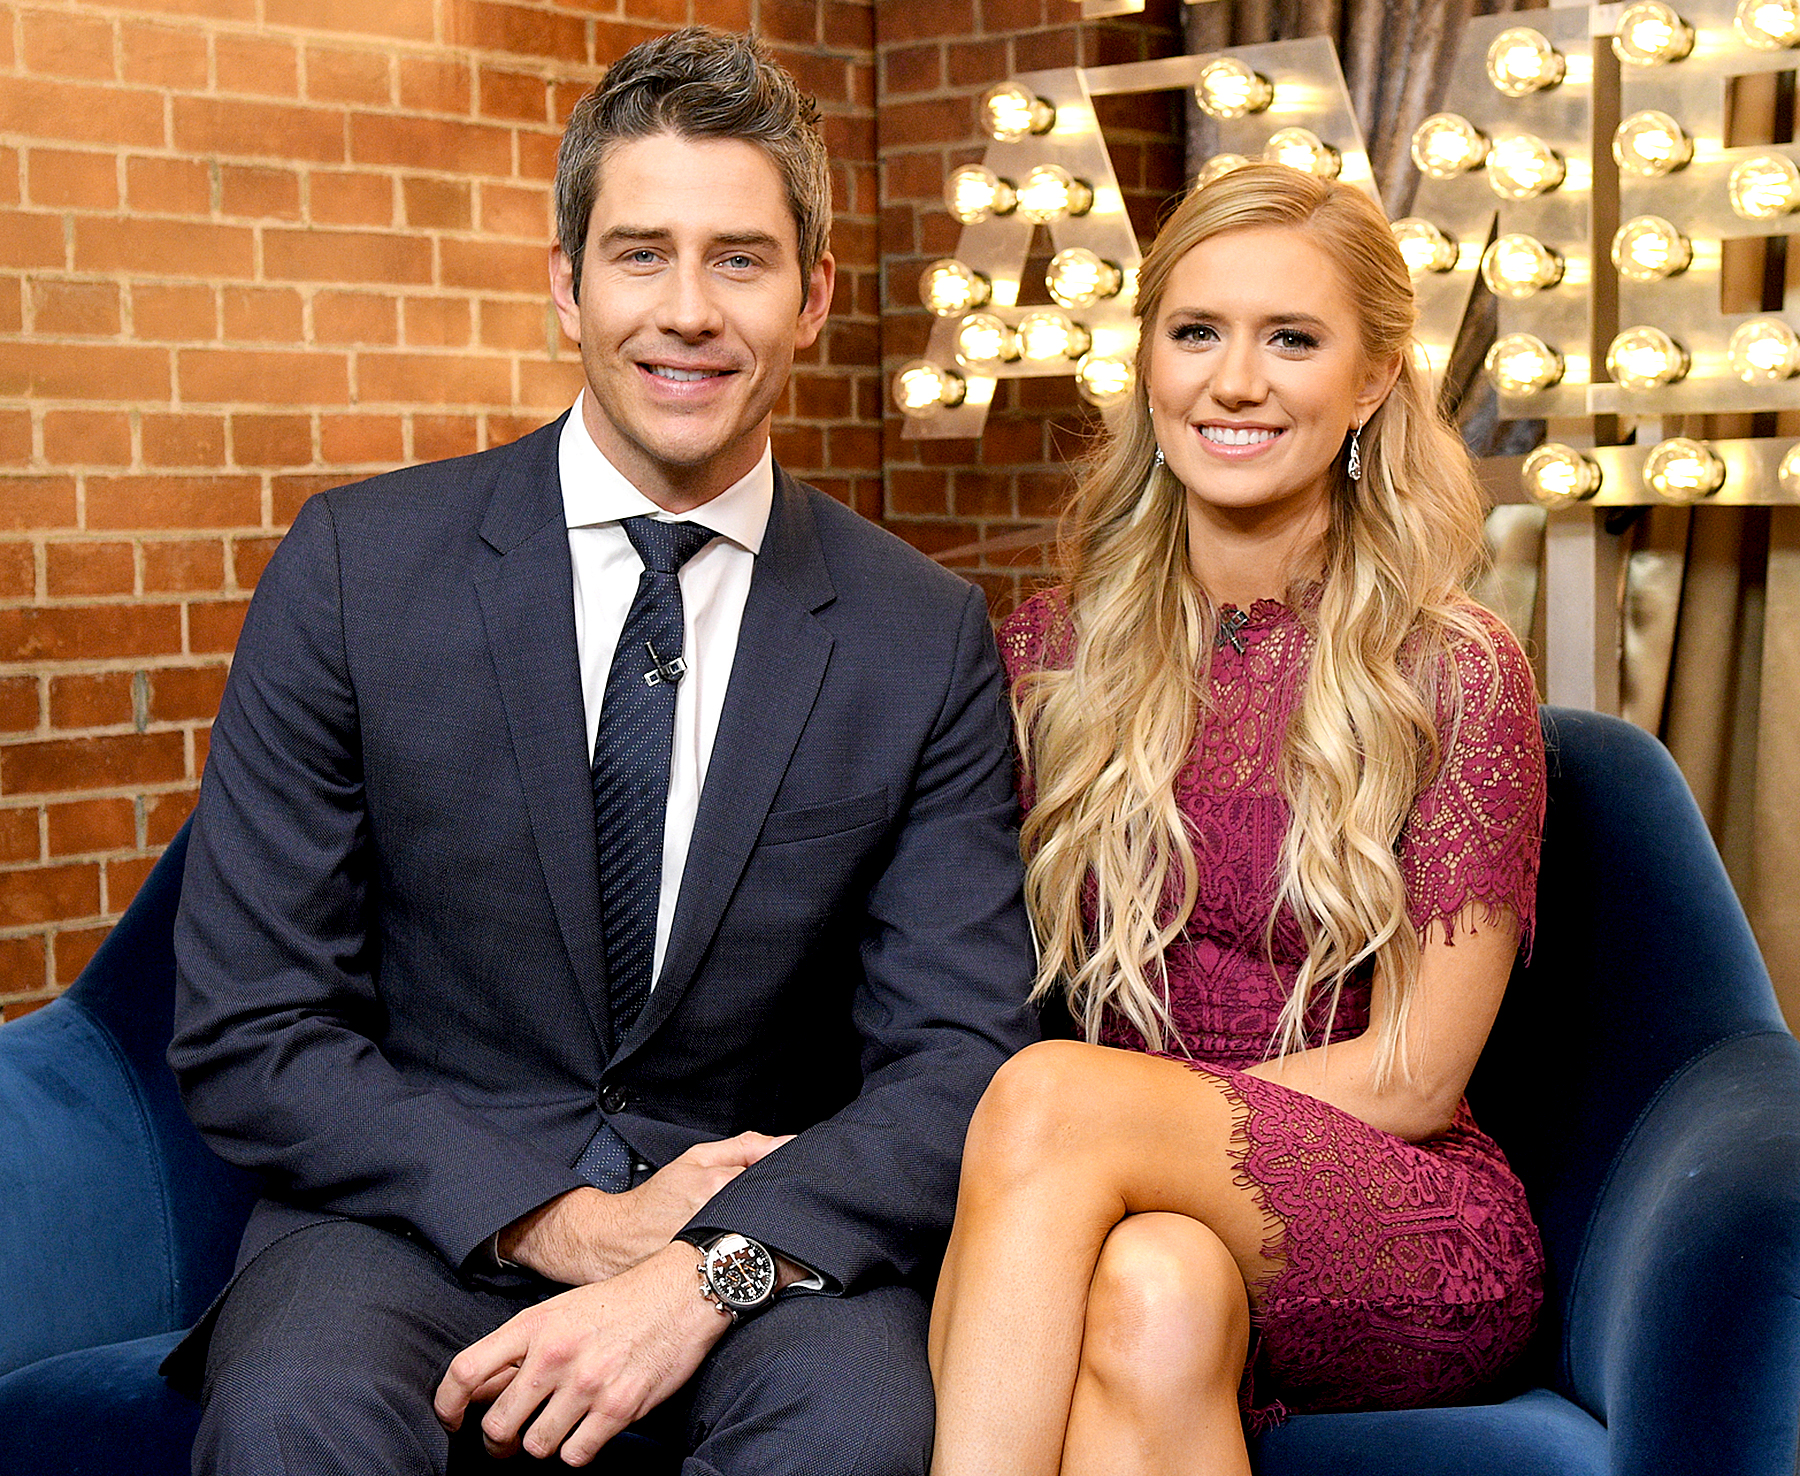 From 'Bachelor' Breakup to Baby! Arie and Lauren's Romance Timeline